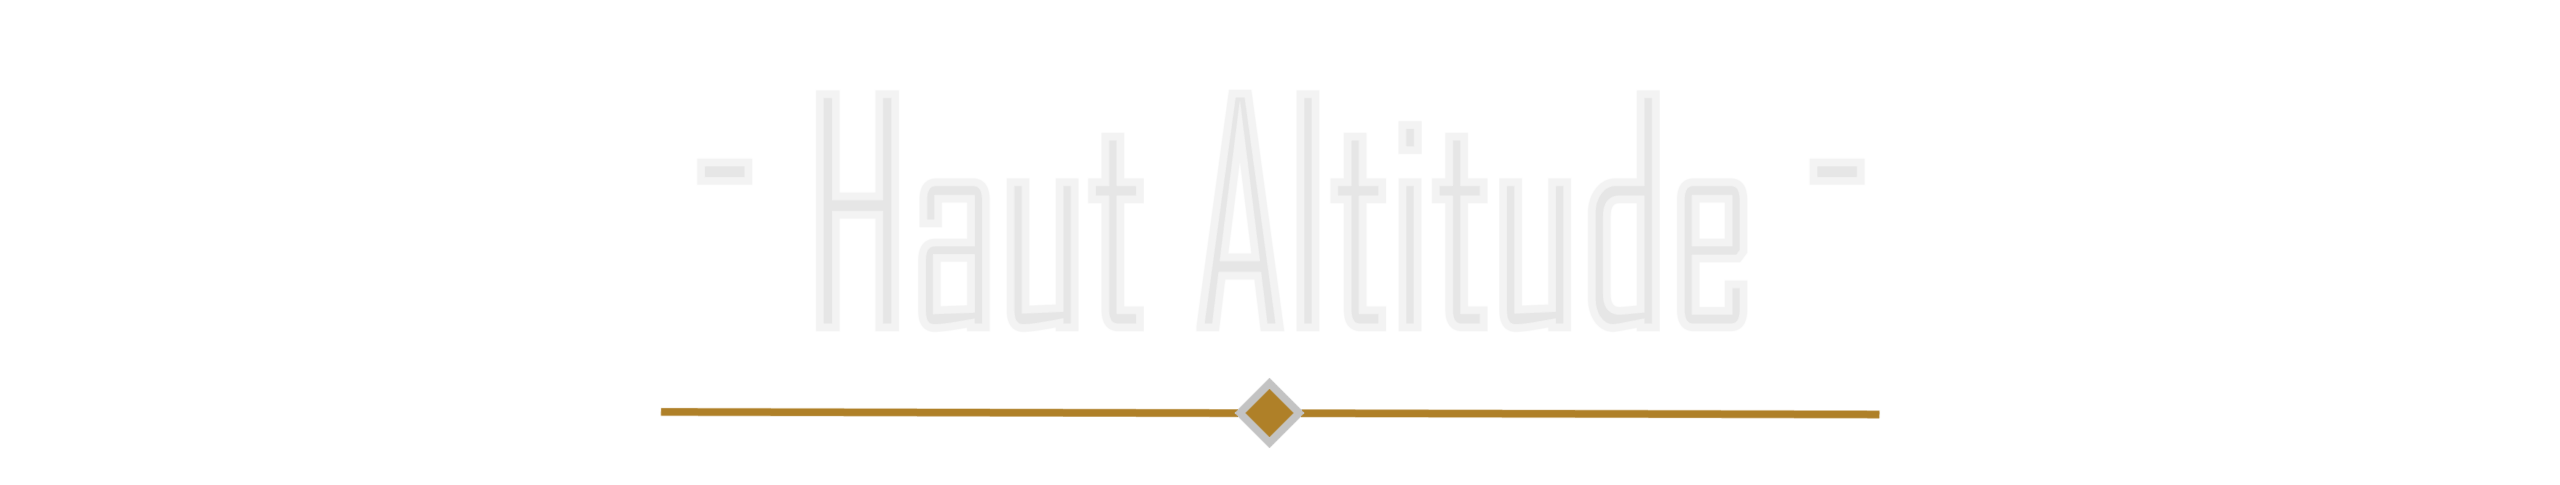 Haut Altitude: Online Coaching